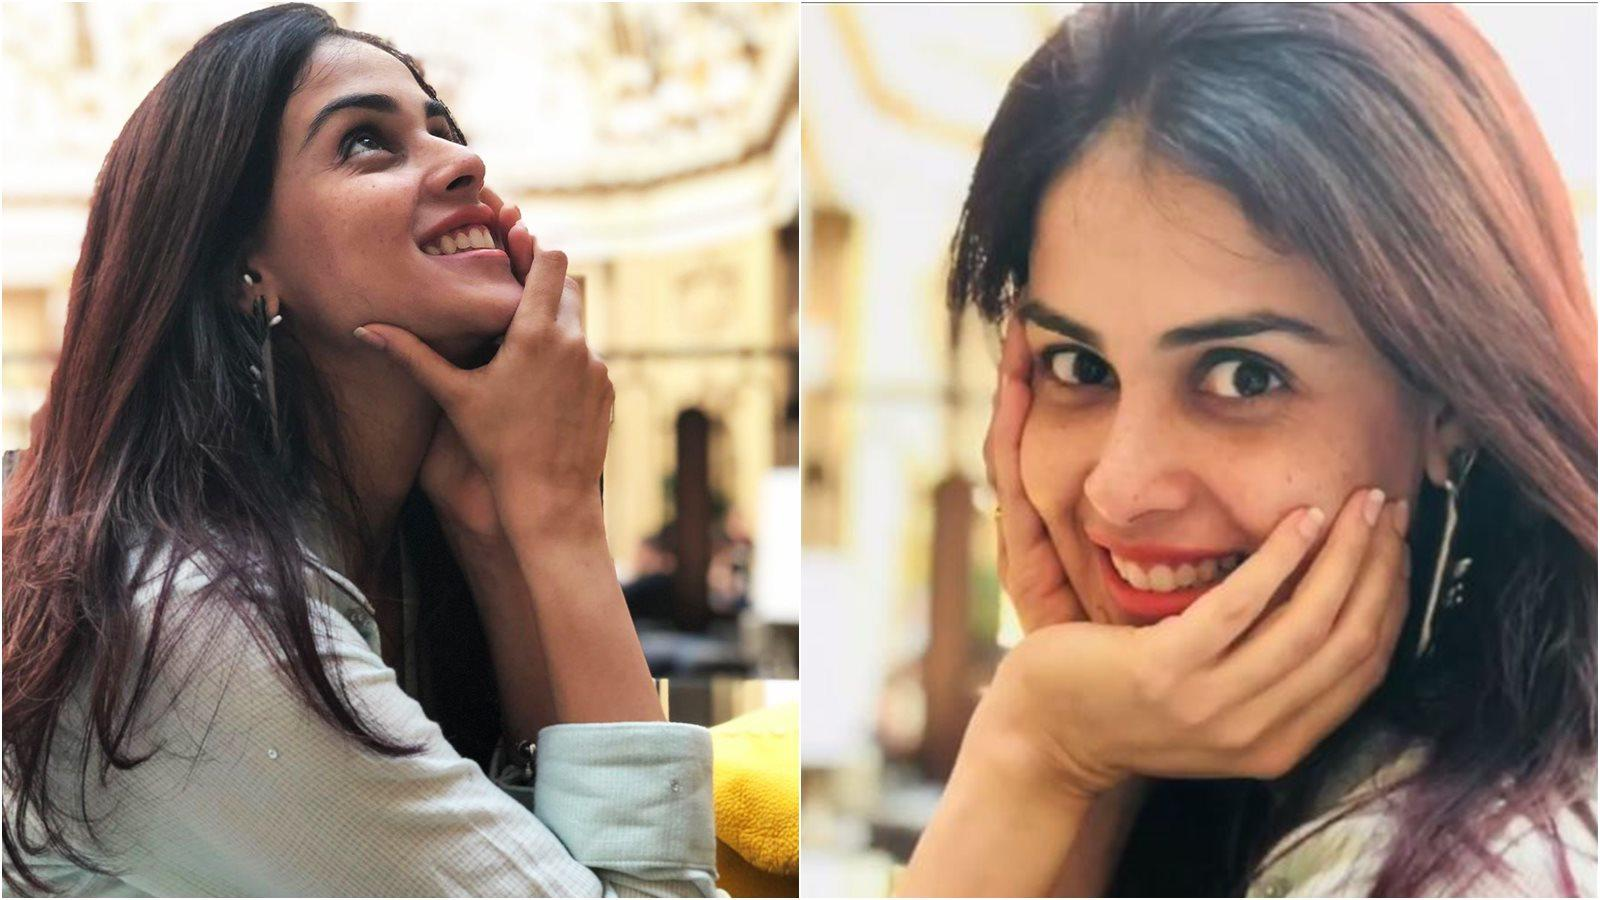 Genelia D'Souza's killer smile in these latest pictures will fill your hearts with happiness!